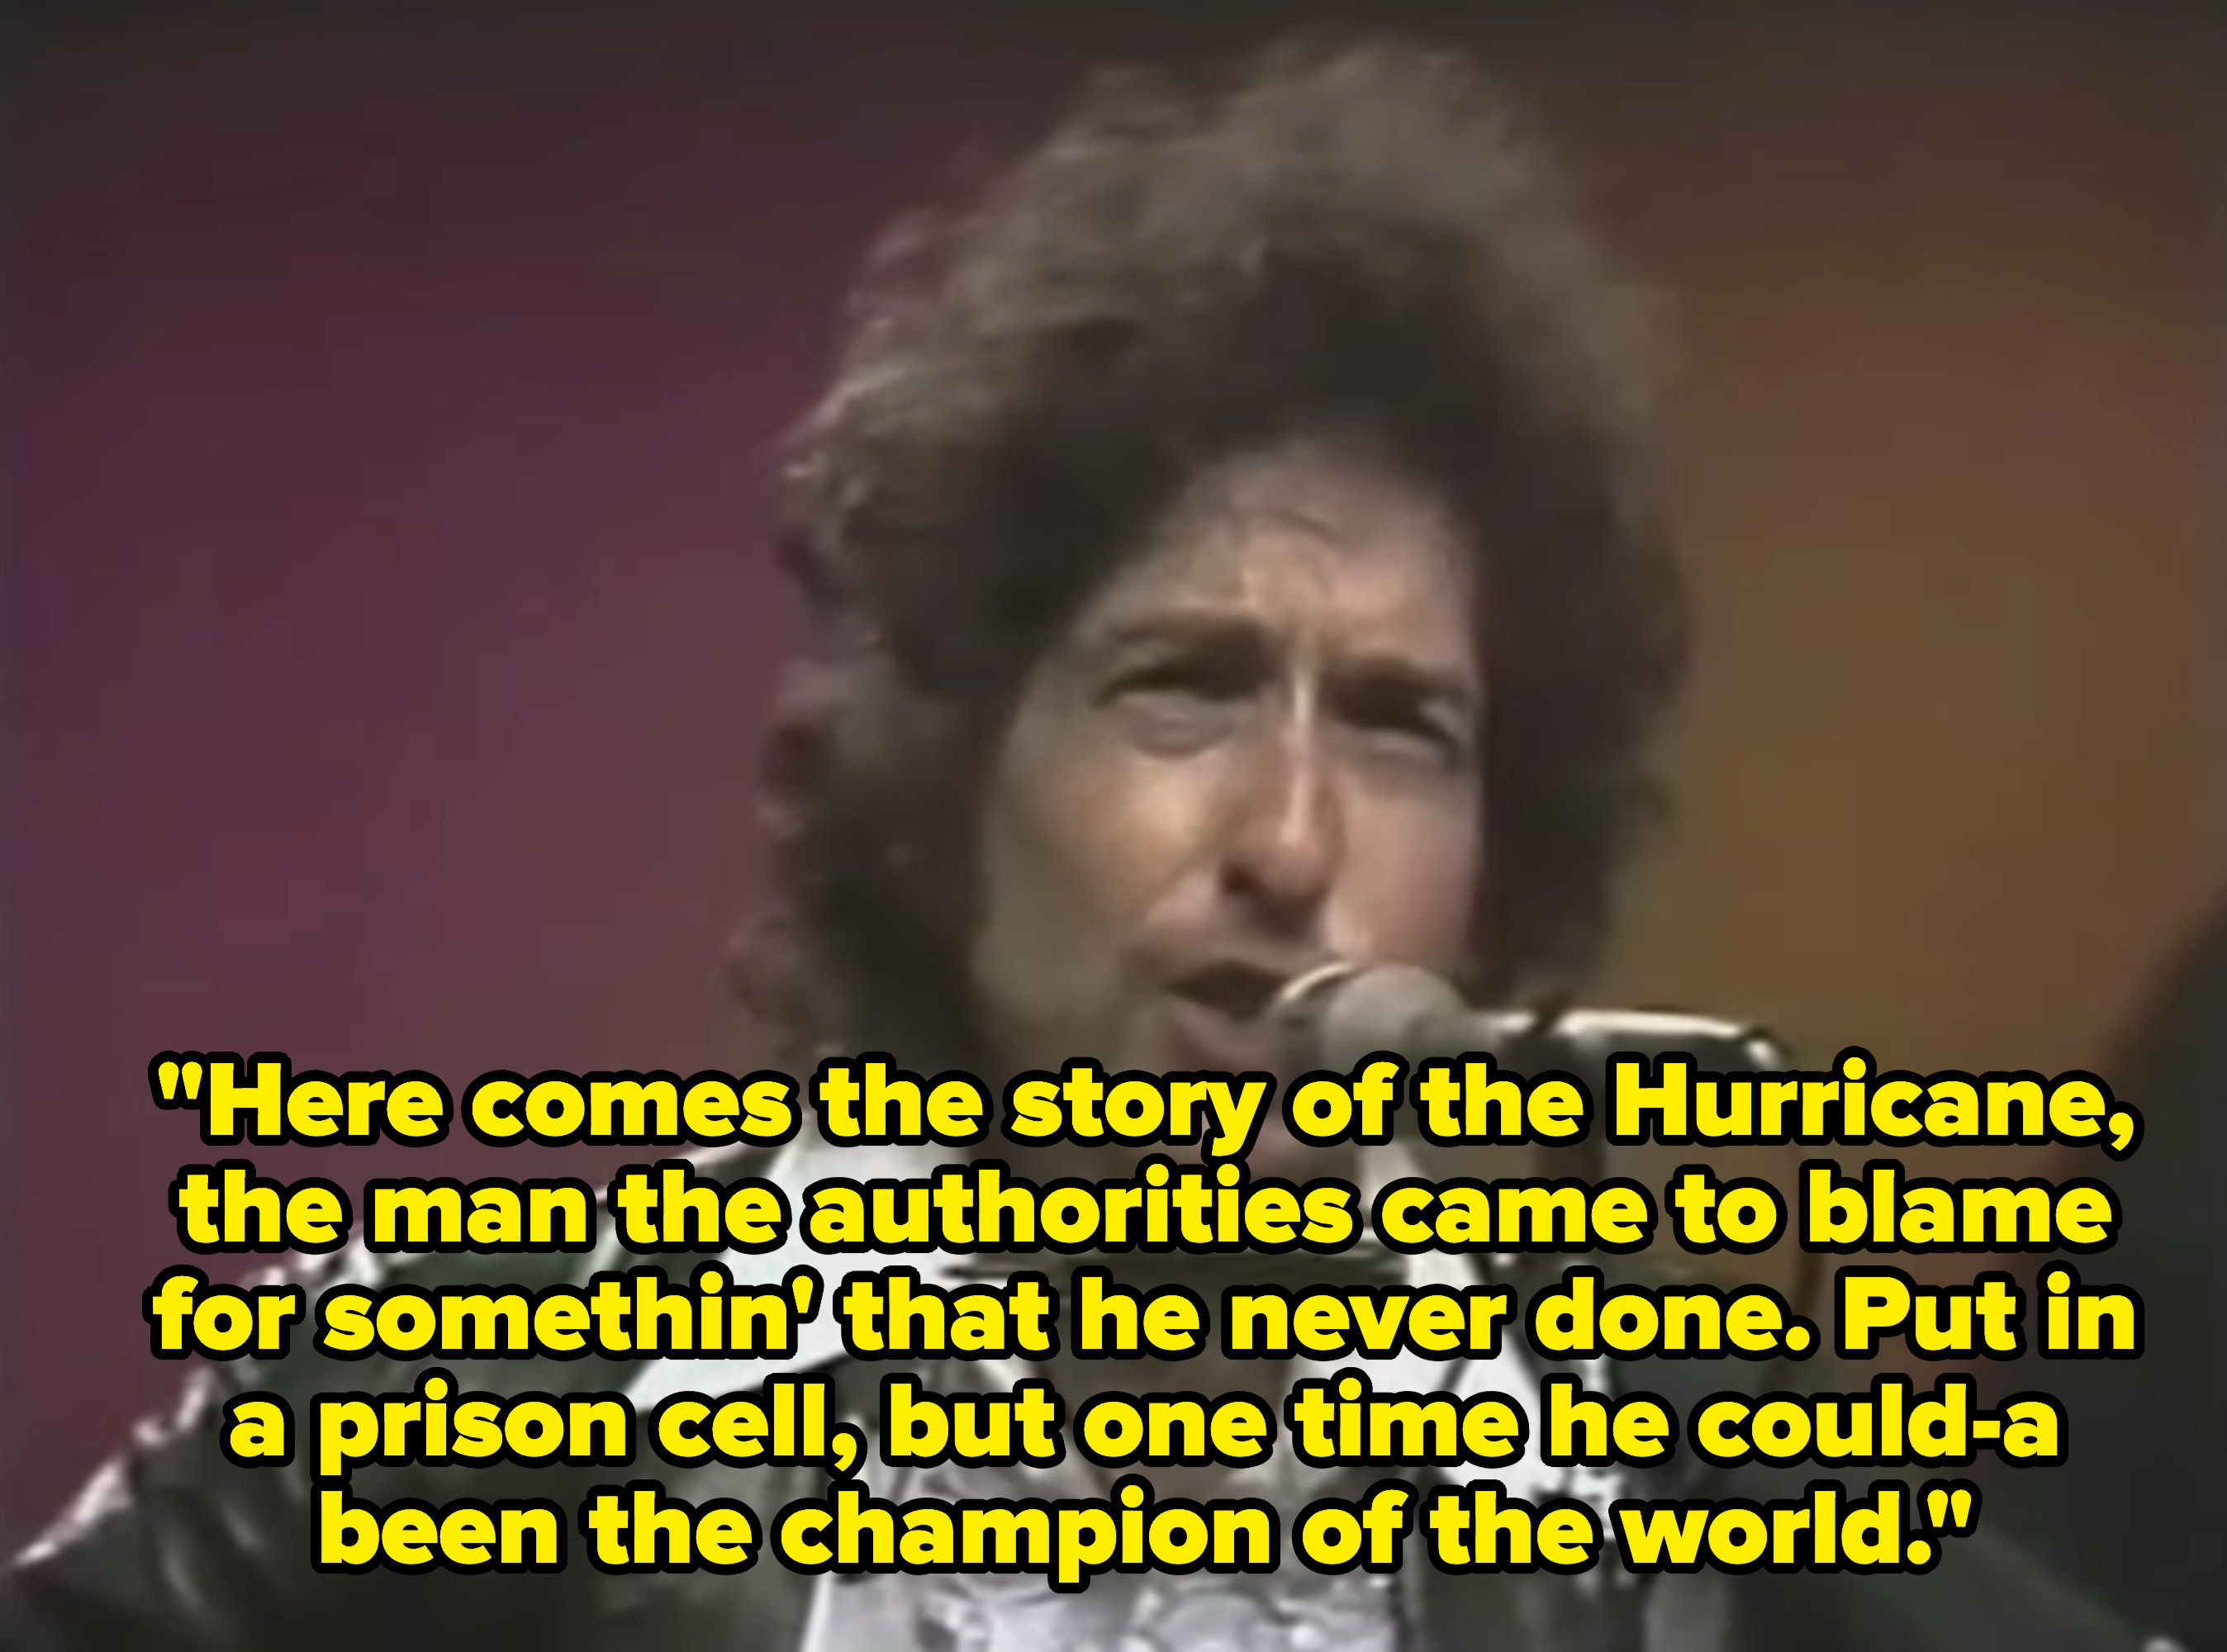 Lyrics: Here comes the story of the Hurricane, the man the authorities came to blame for somethin' that he never done. Put in a prison cell, but one time he could-a been the champion of the world